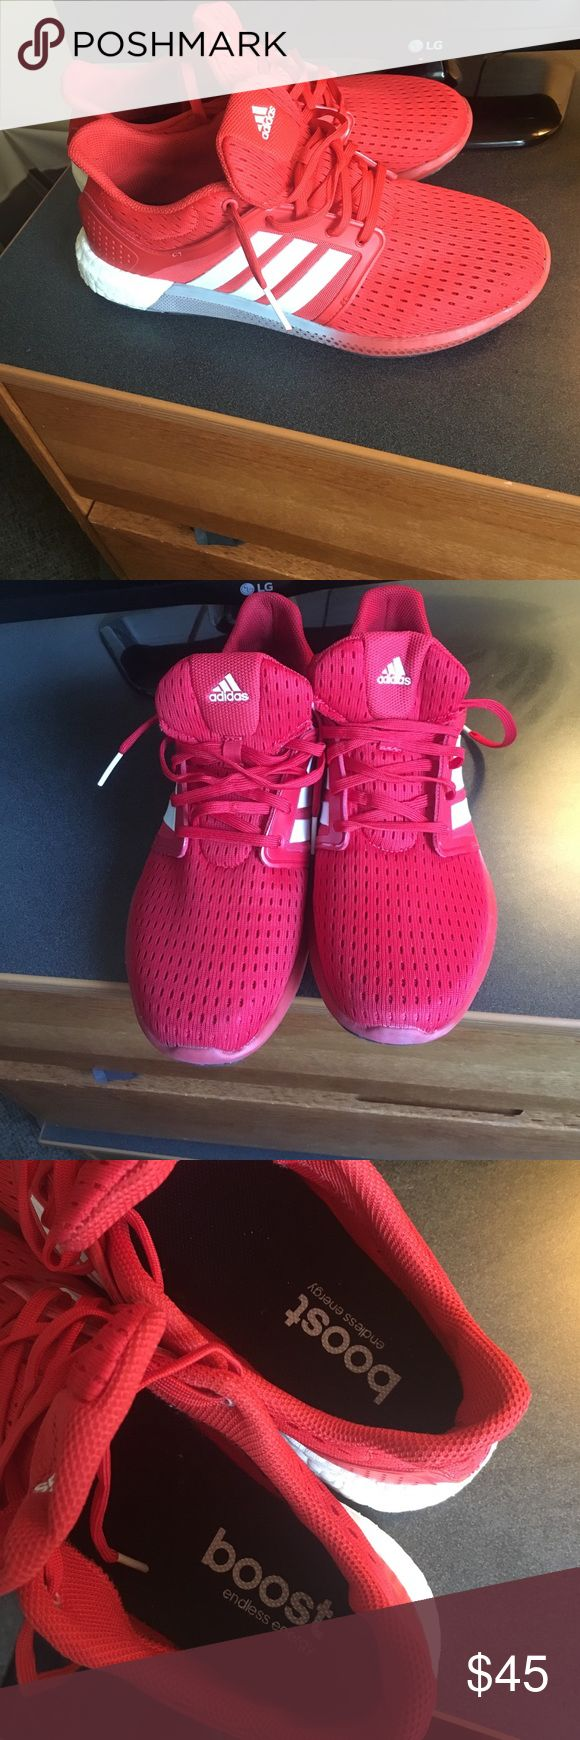 Red Adidas Boost Red Adidas Boost shoes, perfect condition, worn only 2 times. Just not a shoe color that I have a lot of clothes to go with! Feel free to make an offer! Also a men's 8, women's 10 Adidas Shoes Sneakers